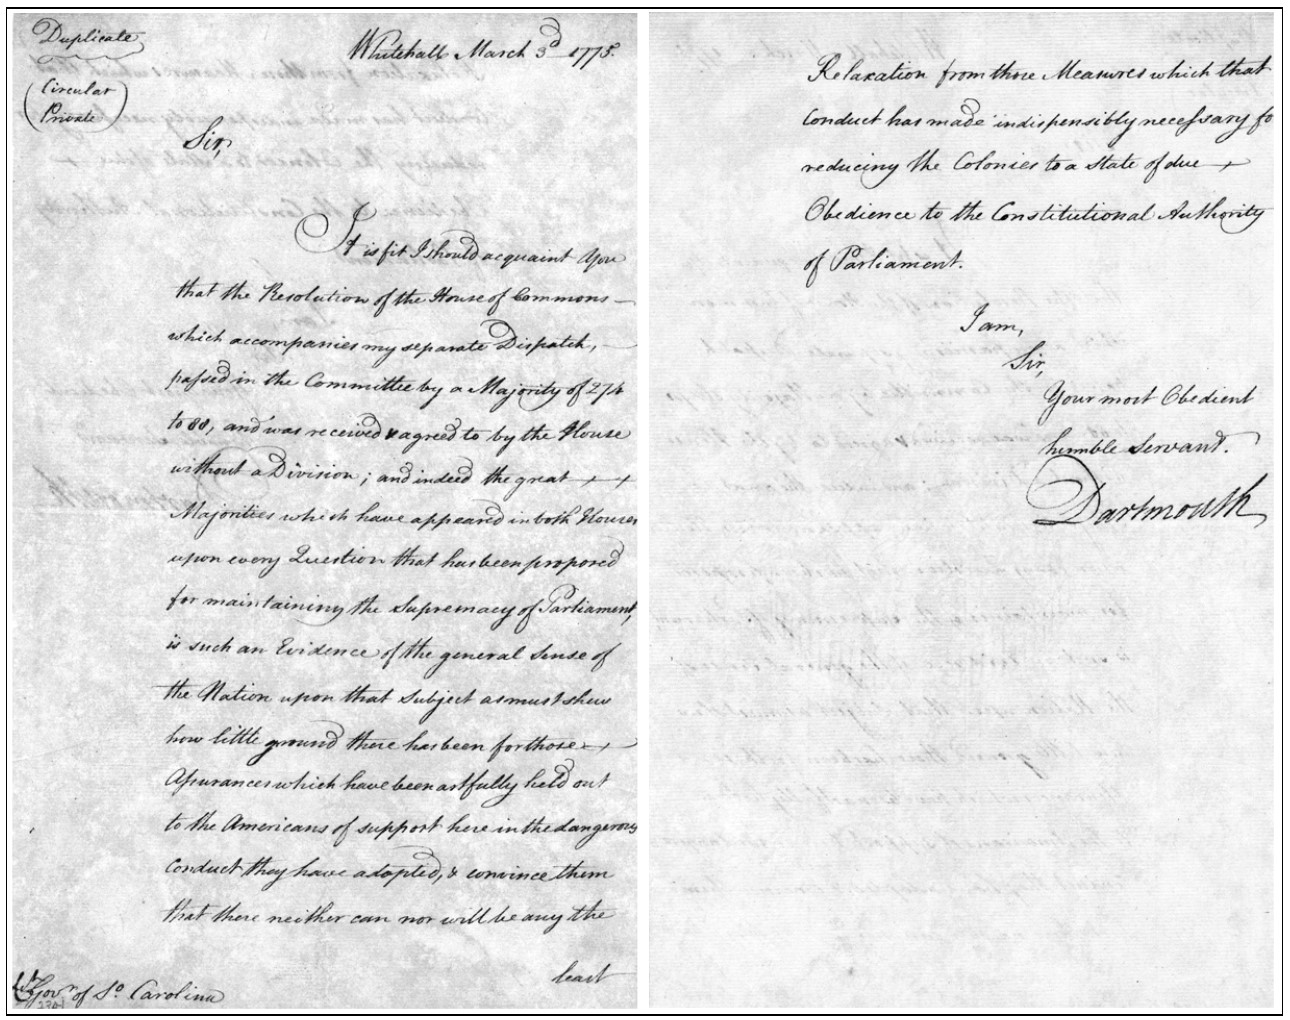 Lord Dartmouth's letter to Lt. Gov. William Bull, dated Whitehall, March 3rd 1775, from the Robert W. Gibbes Collection of Revolutionary War Manuscripts at the South Carolina Department of Archives and History.